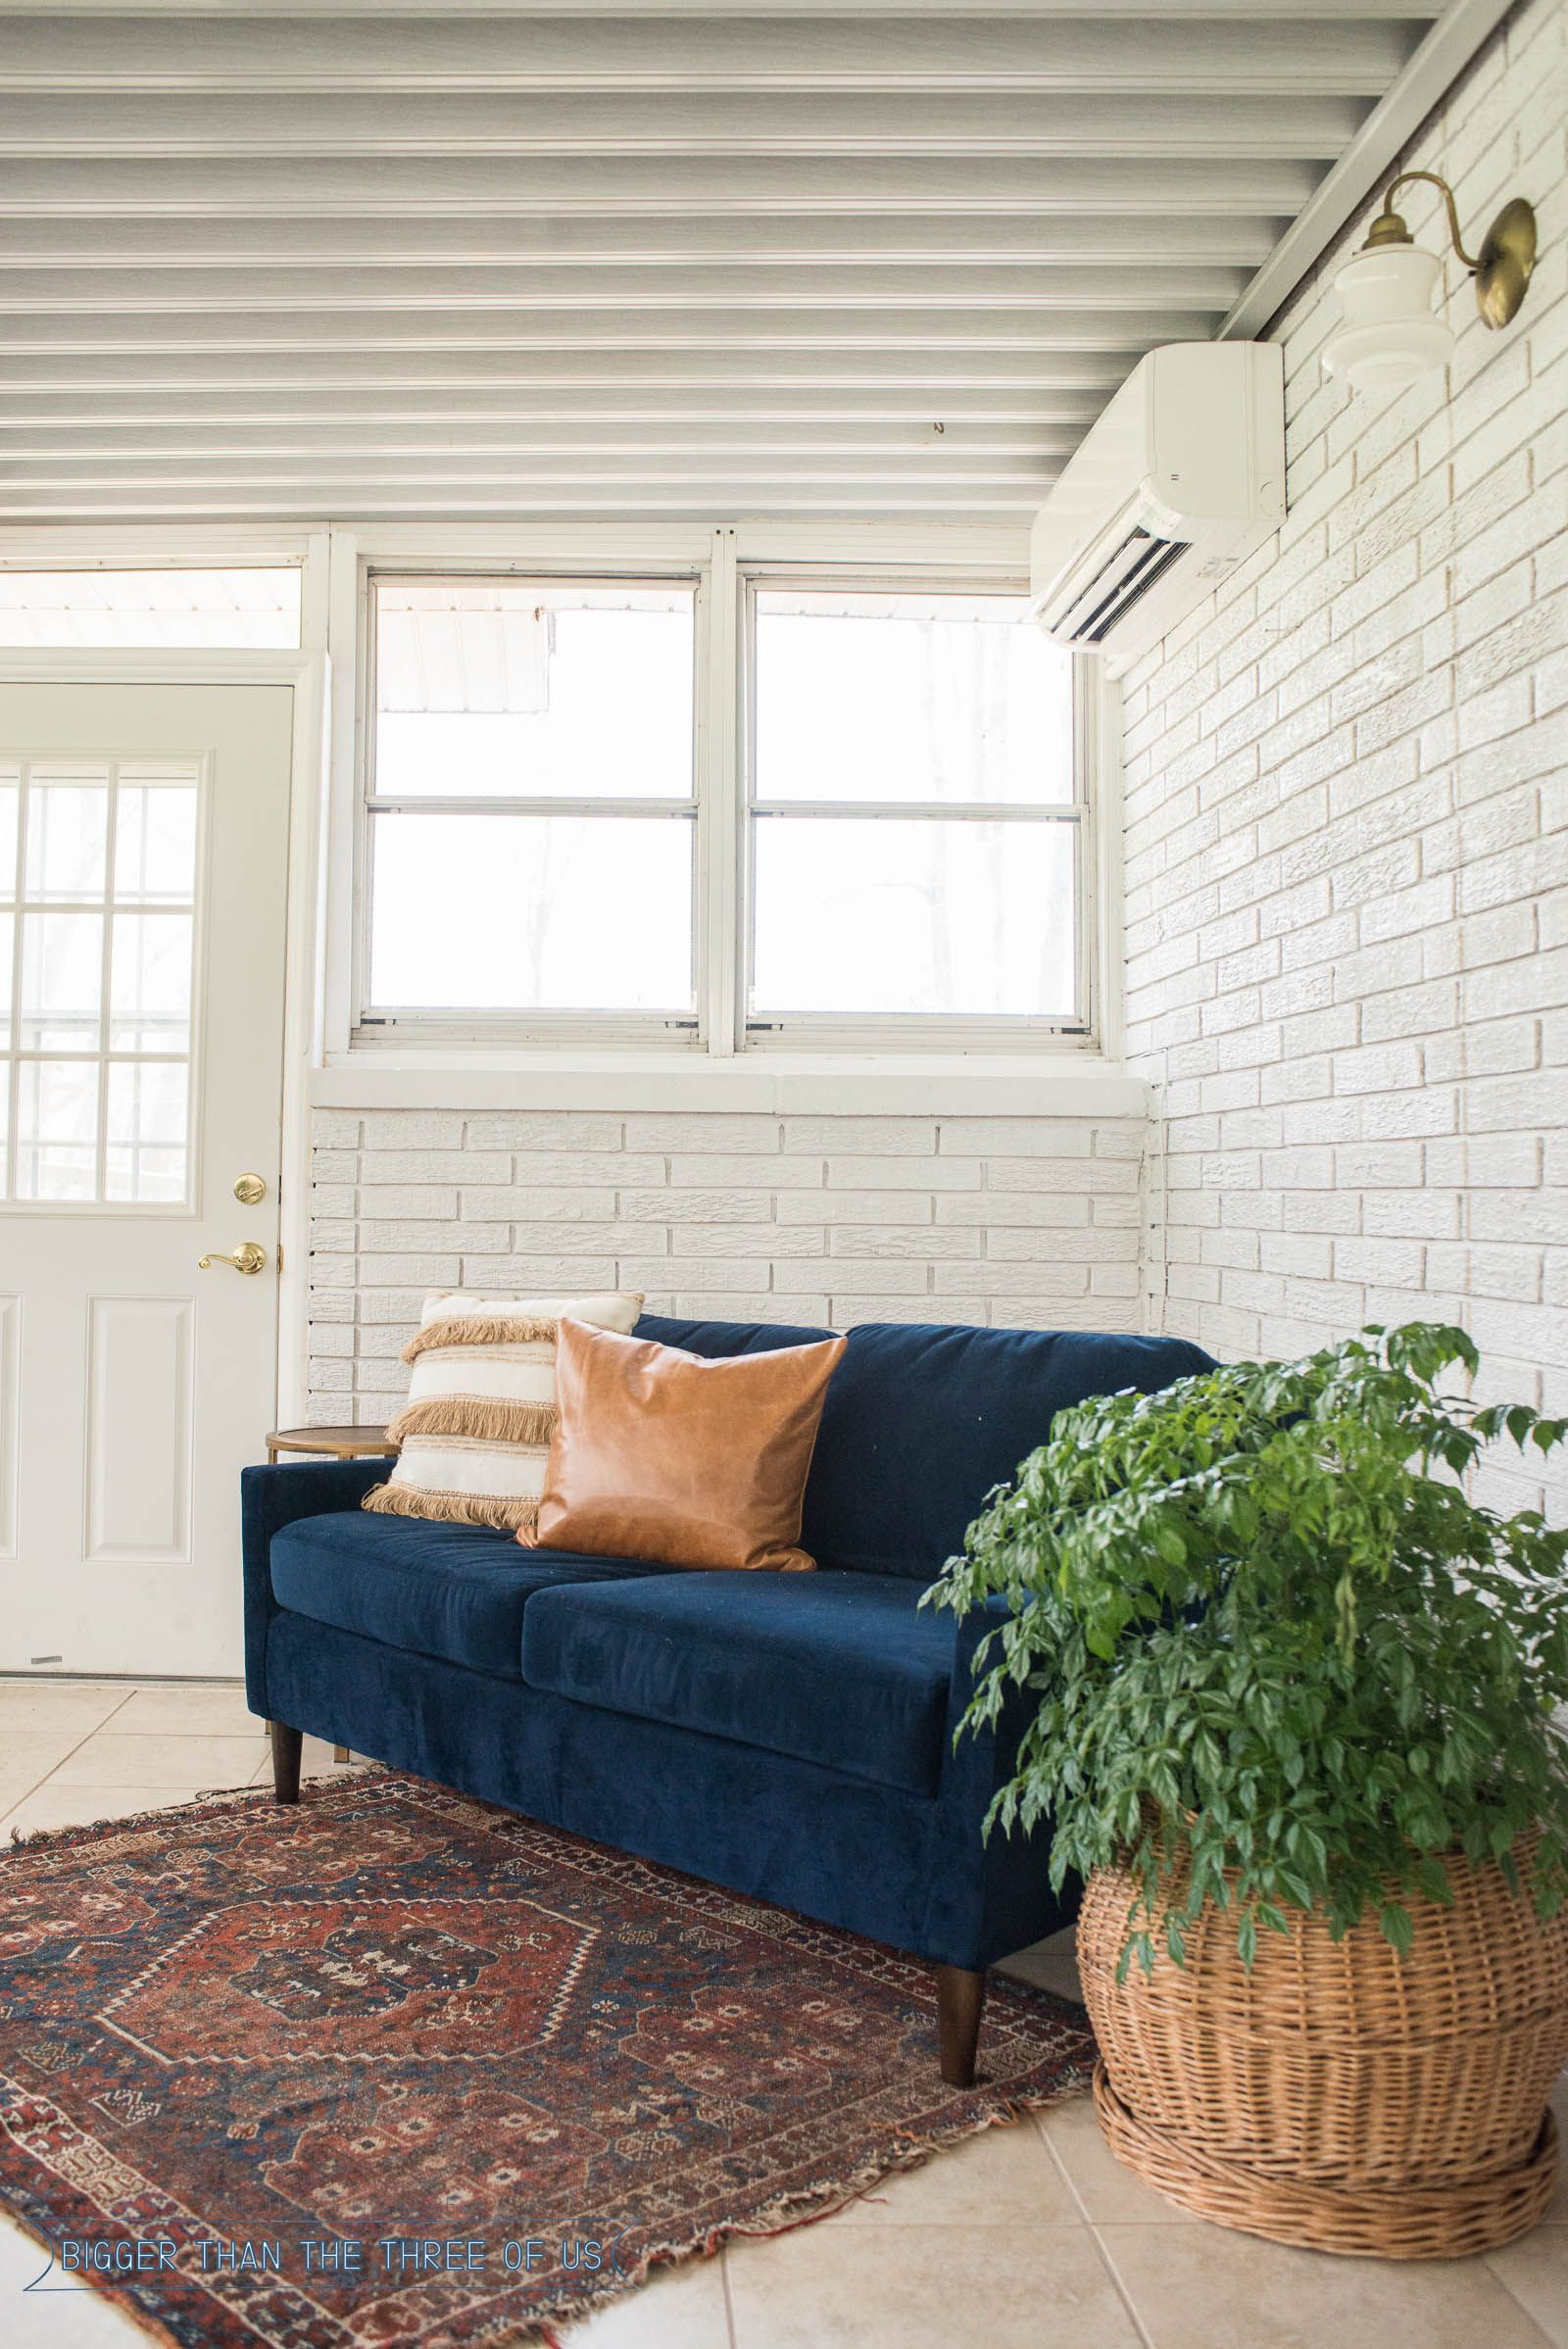 How Much Does A Ductless Mini Split Cost